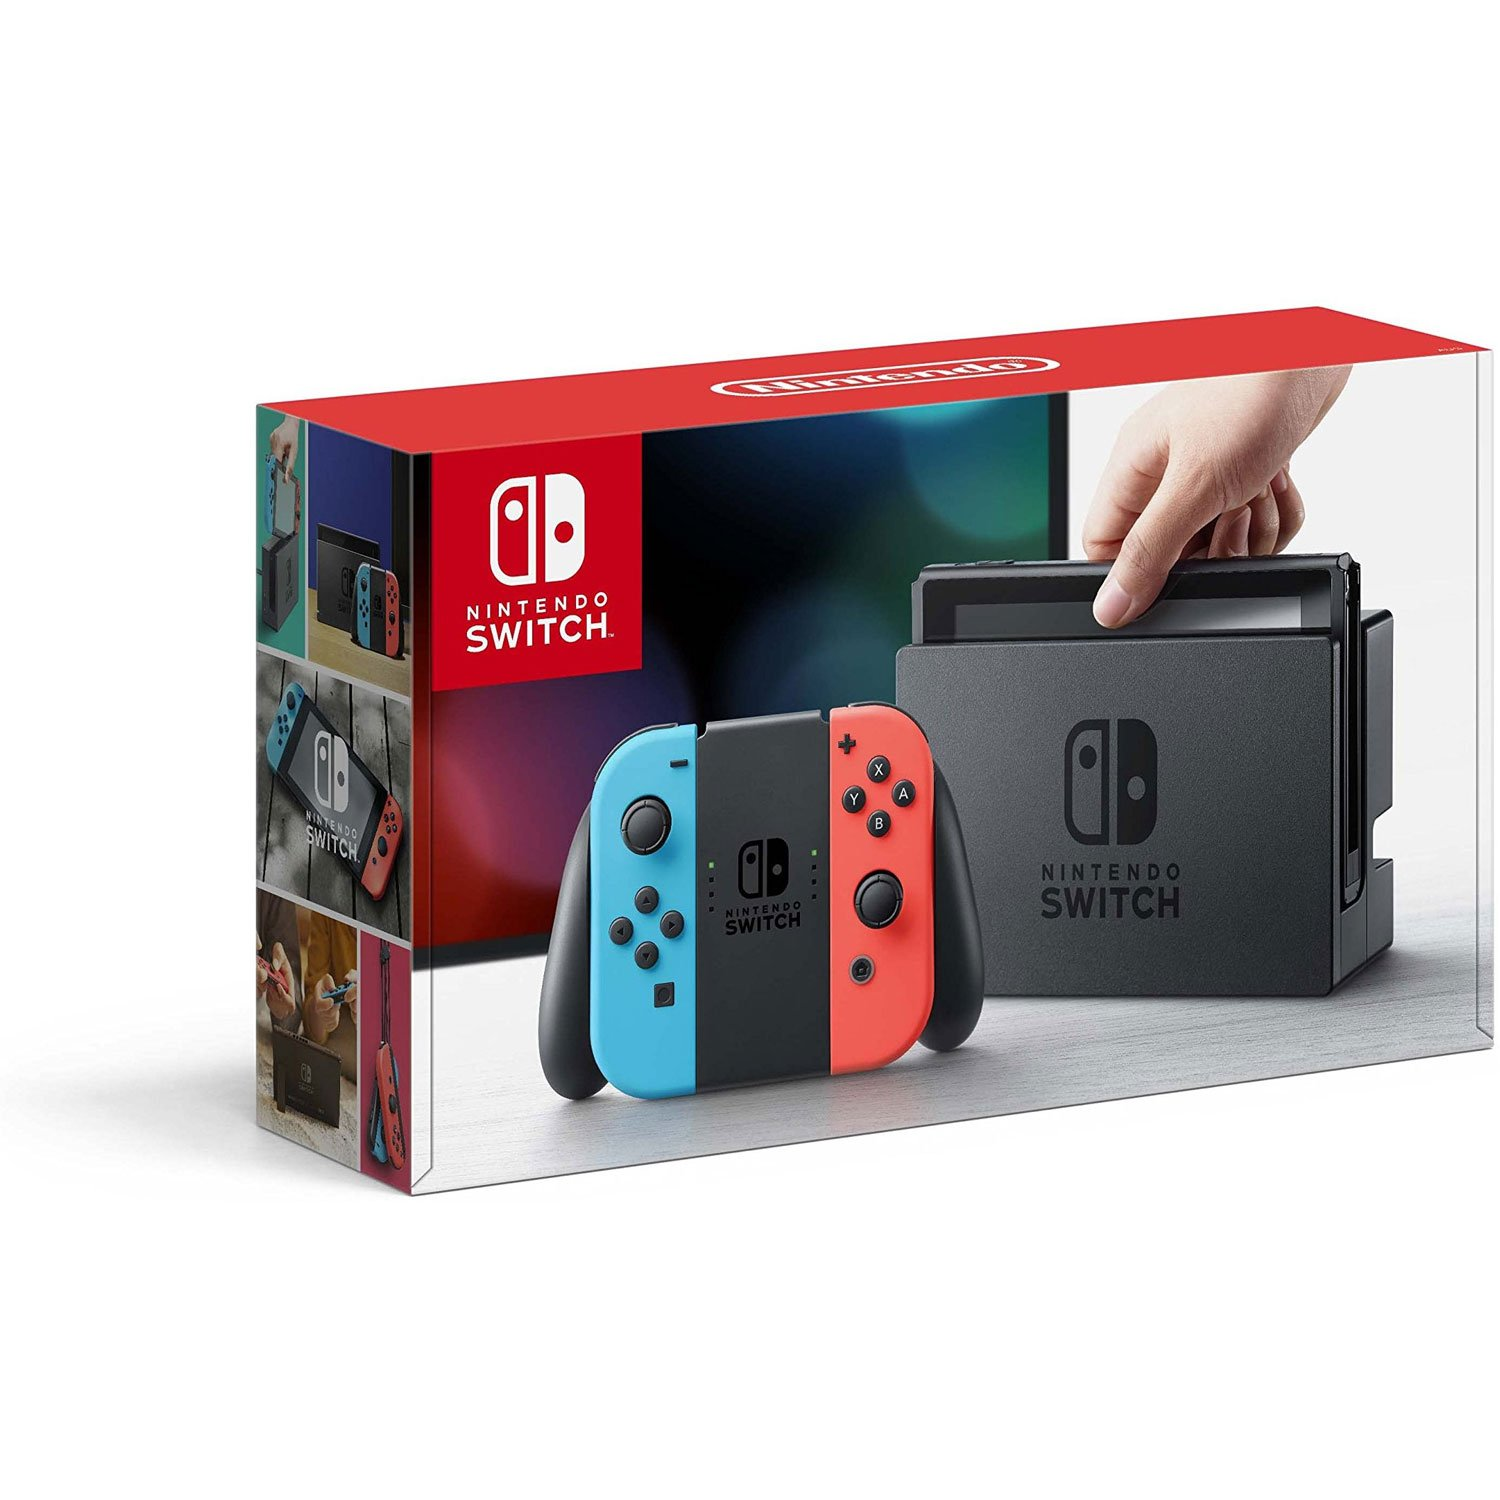 Nintendo Switch - Neon Red and Neon Blue Joy-Con - HAC 001 (Discontinued by Manufacturer) by Nintendo